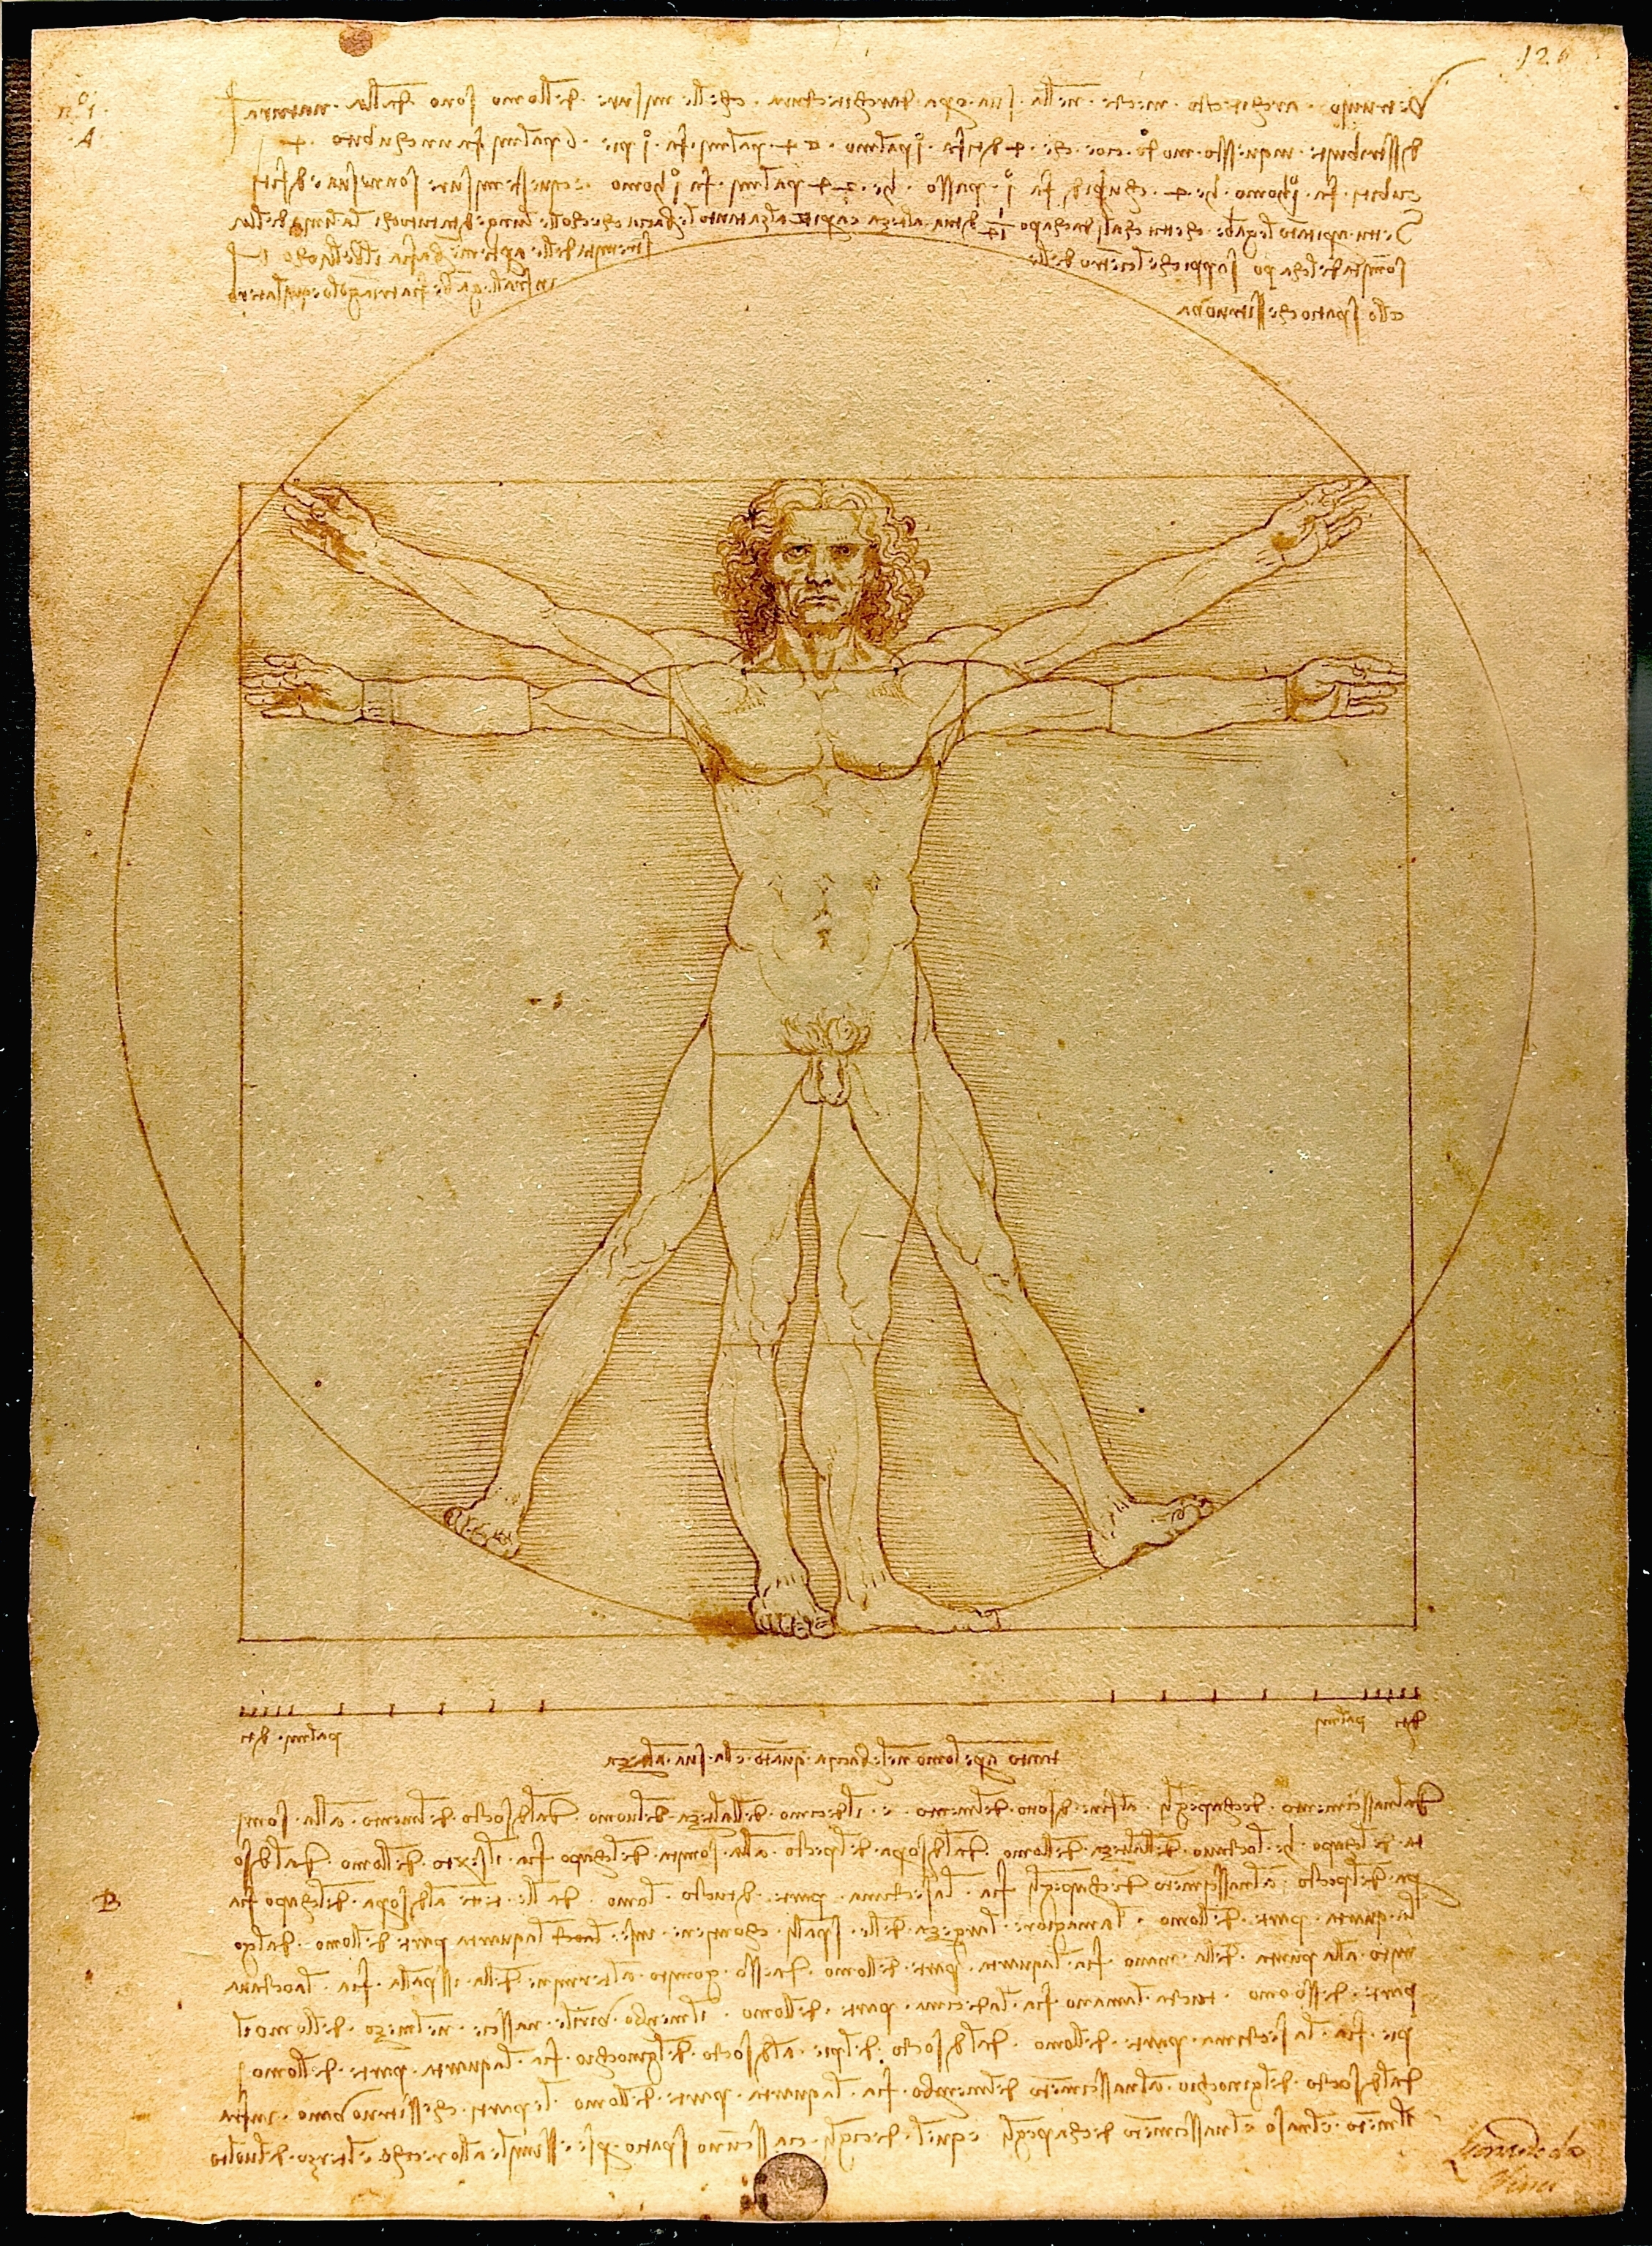 Science and inventions of Leonardo da Vinci - Wikipedia